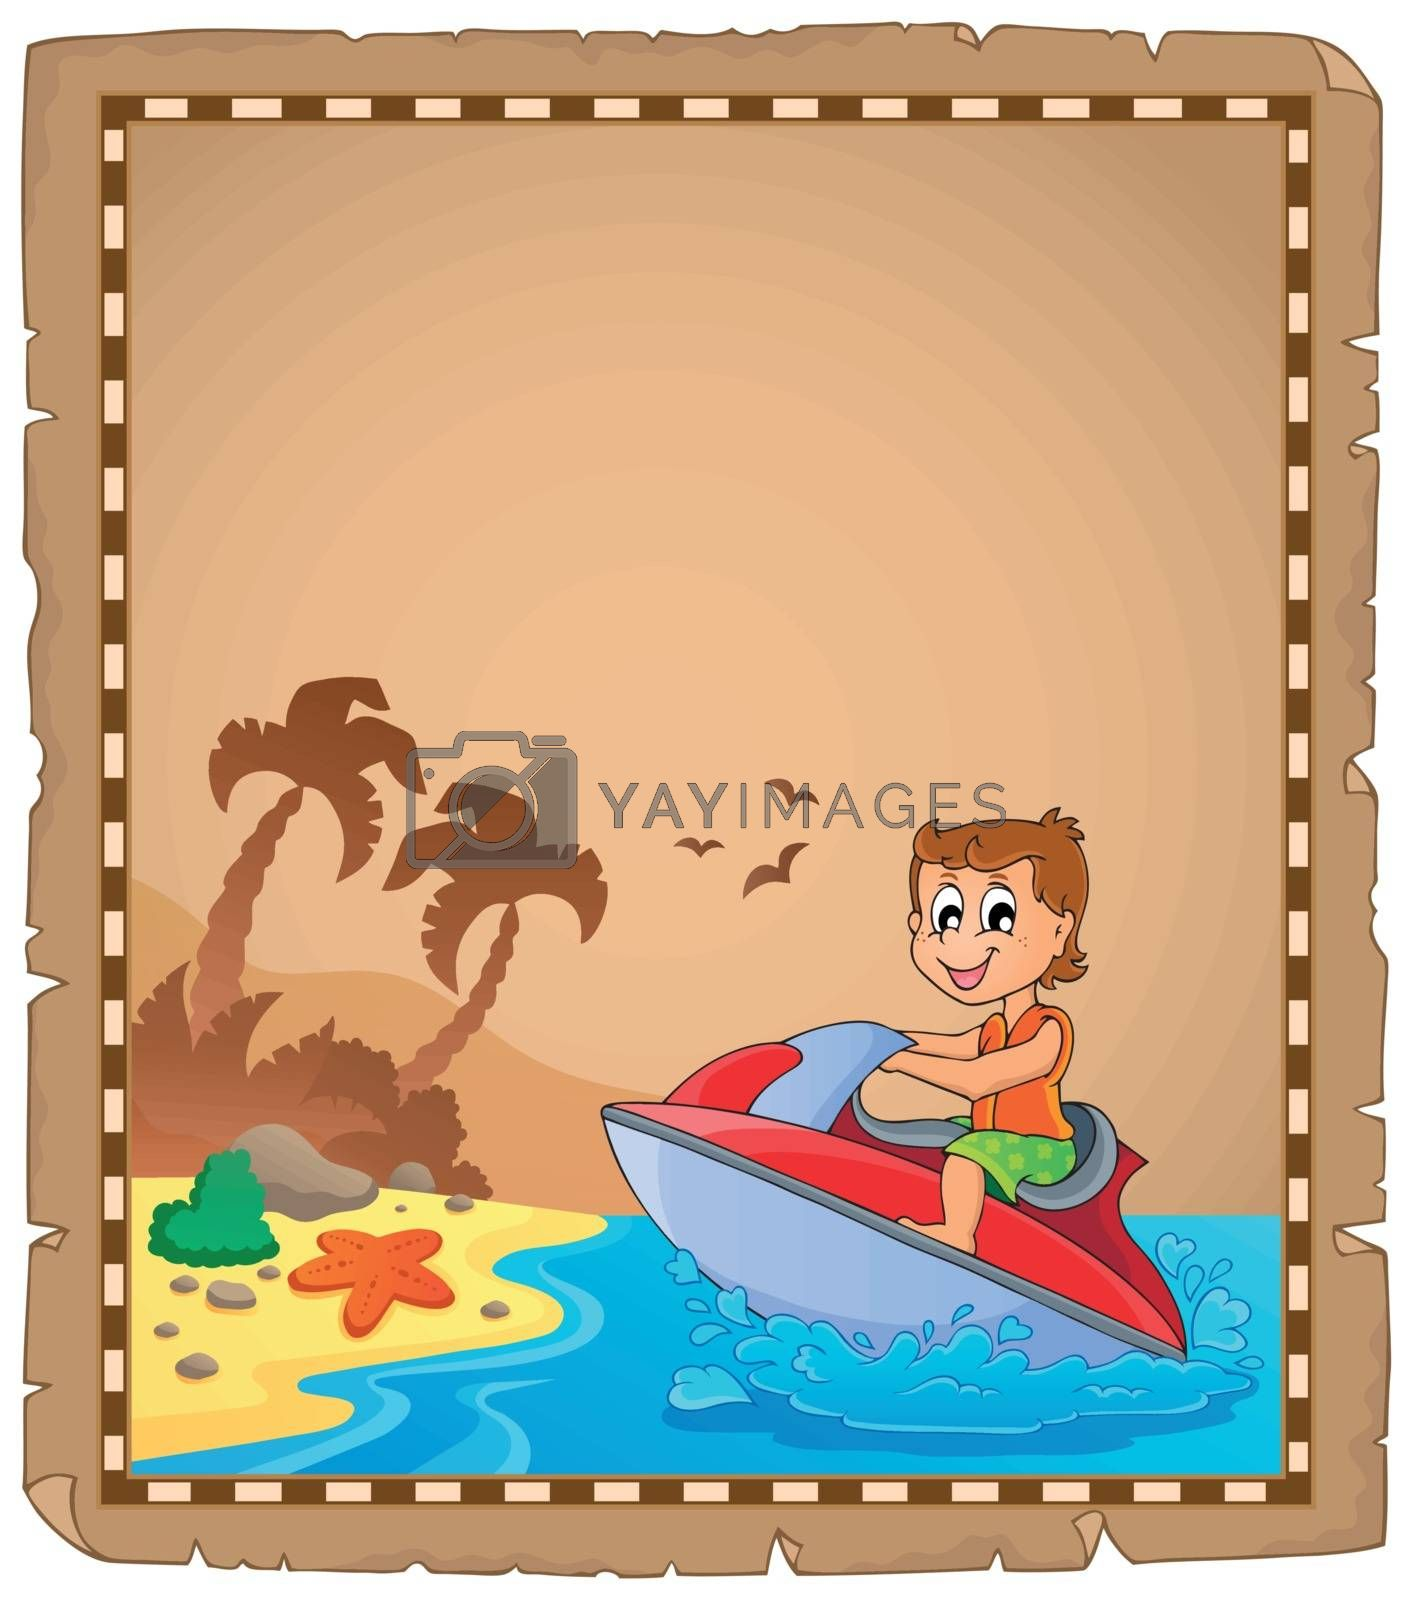 Parchment with travel theme 4 - eps10 vector illustration.